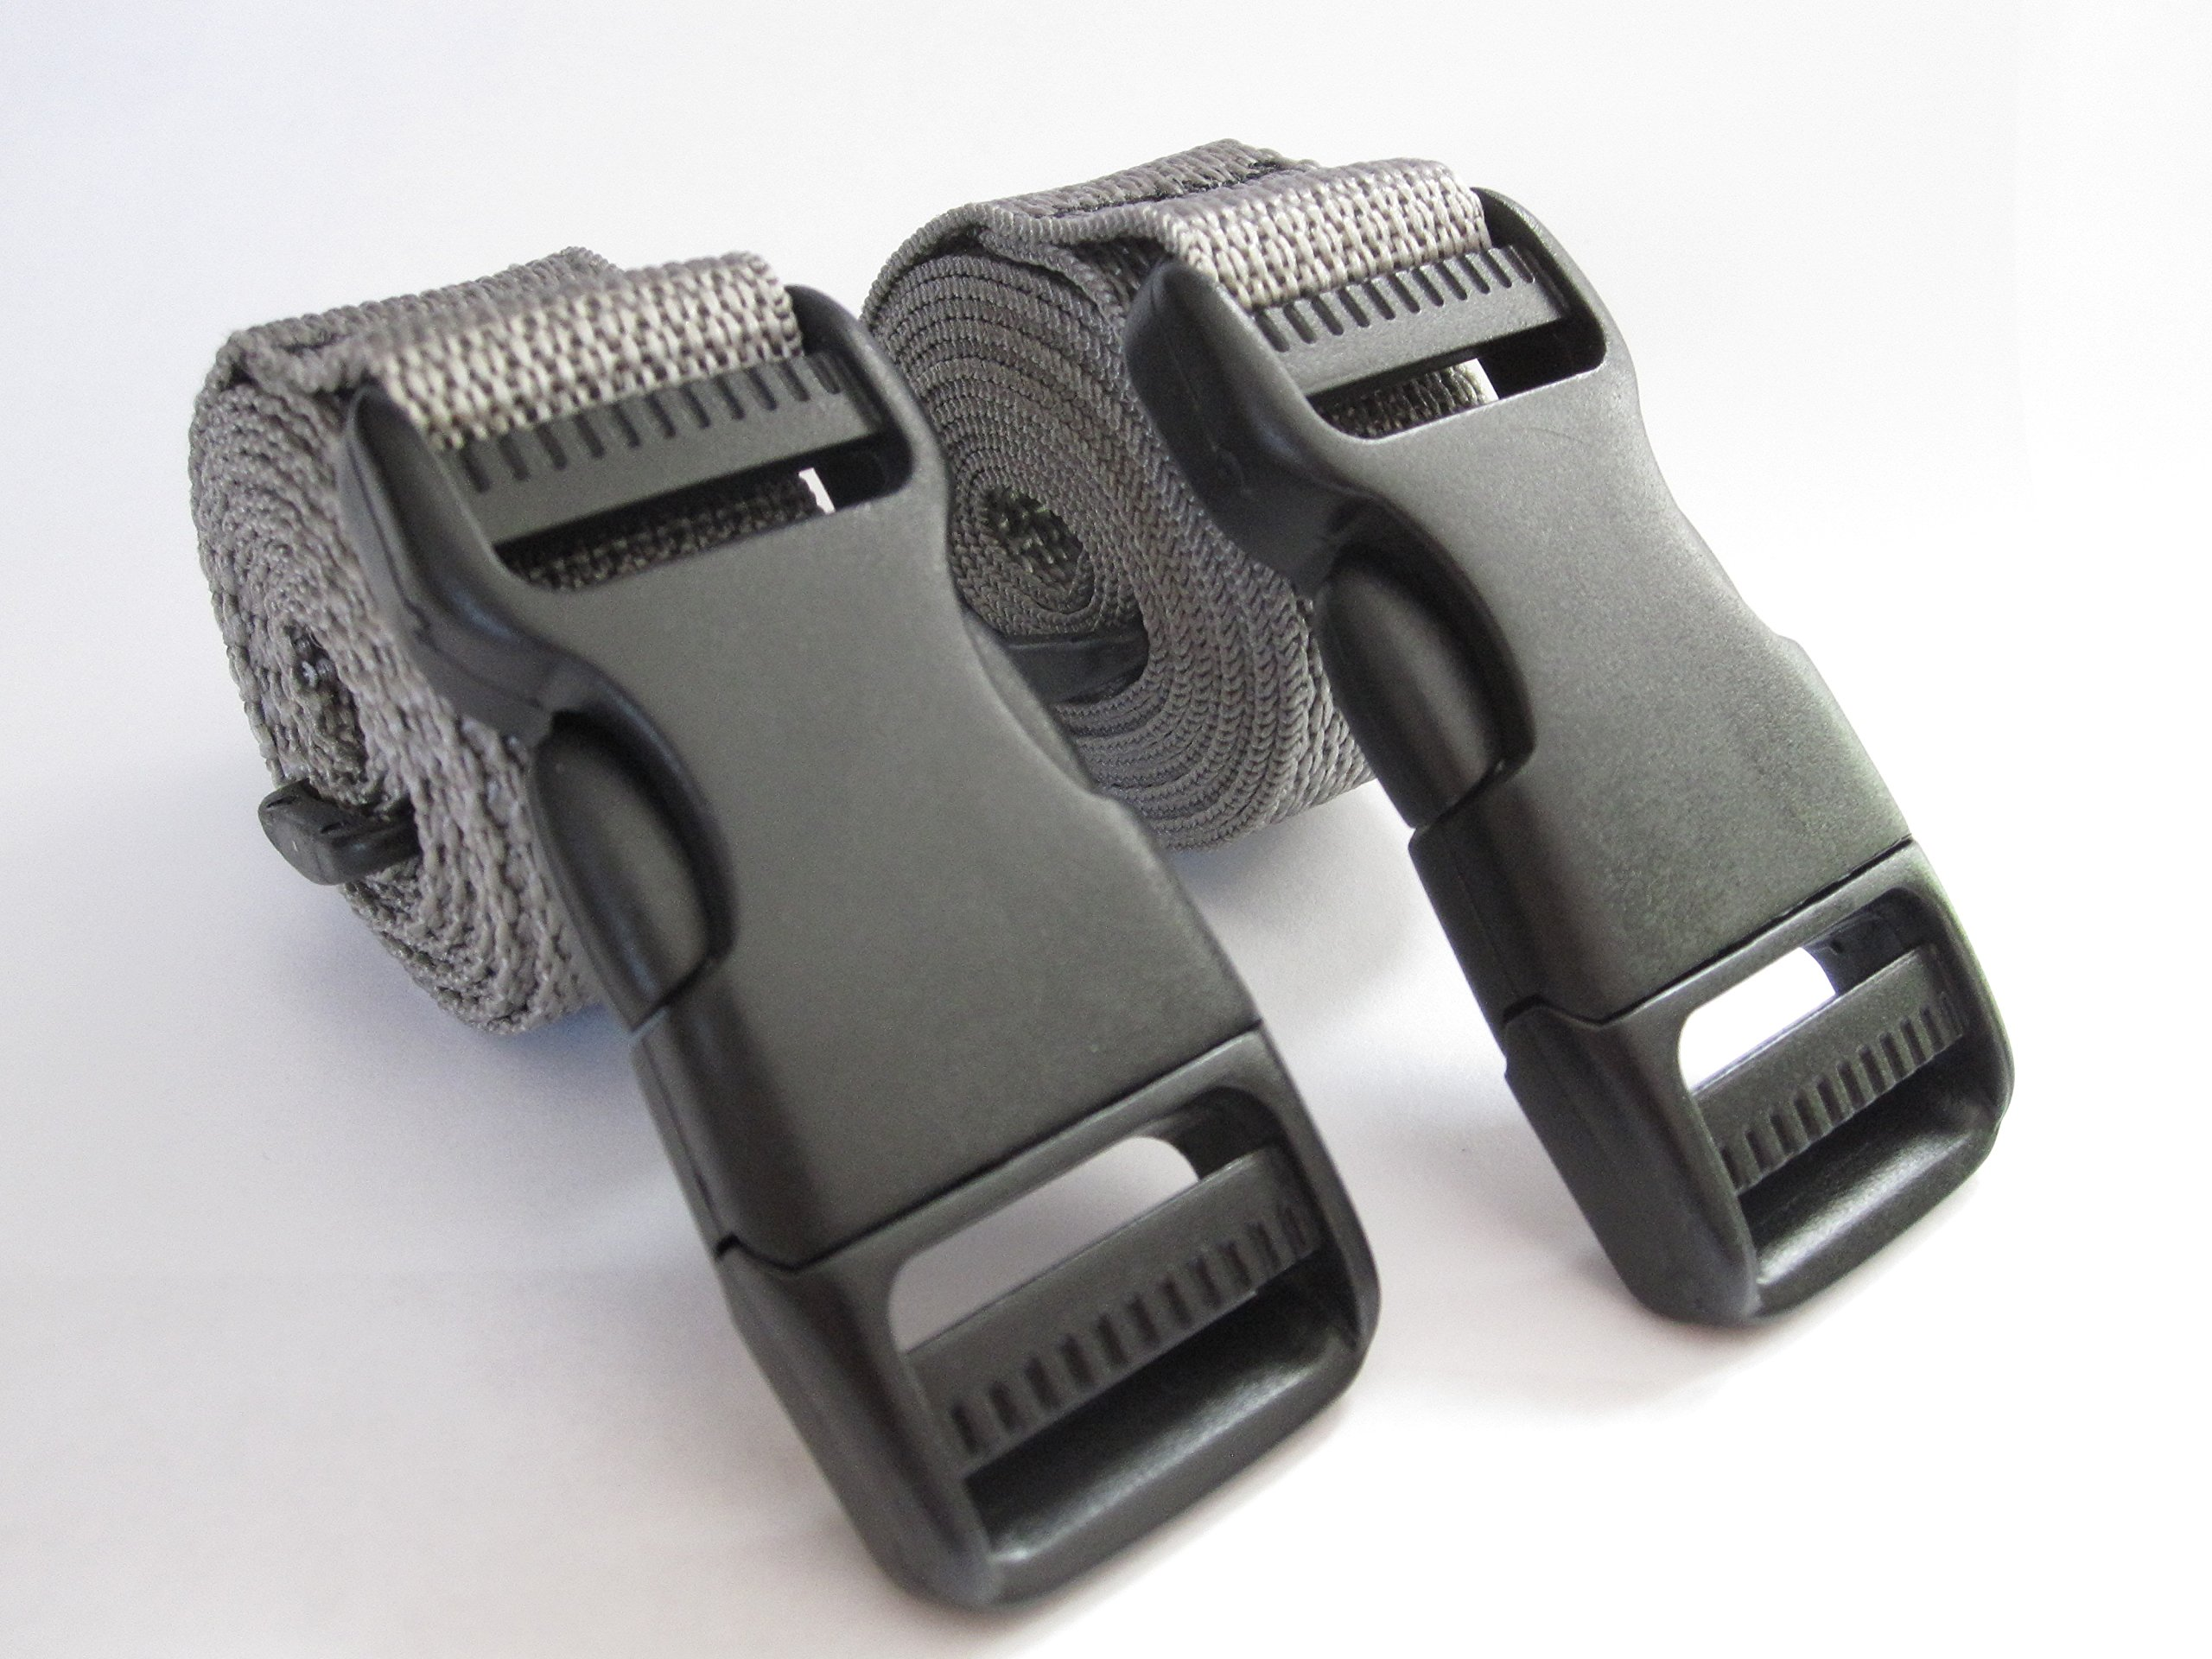 Molle Backpack Accessory Straps - Quick Release Buckle (Grey)